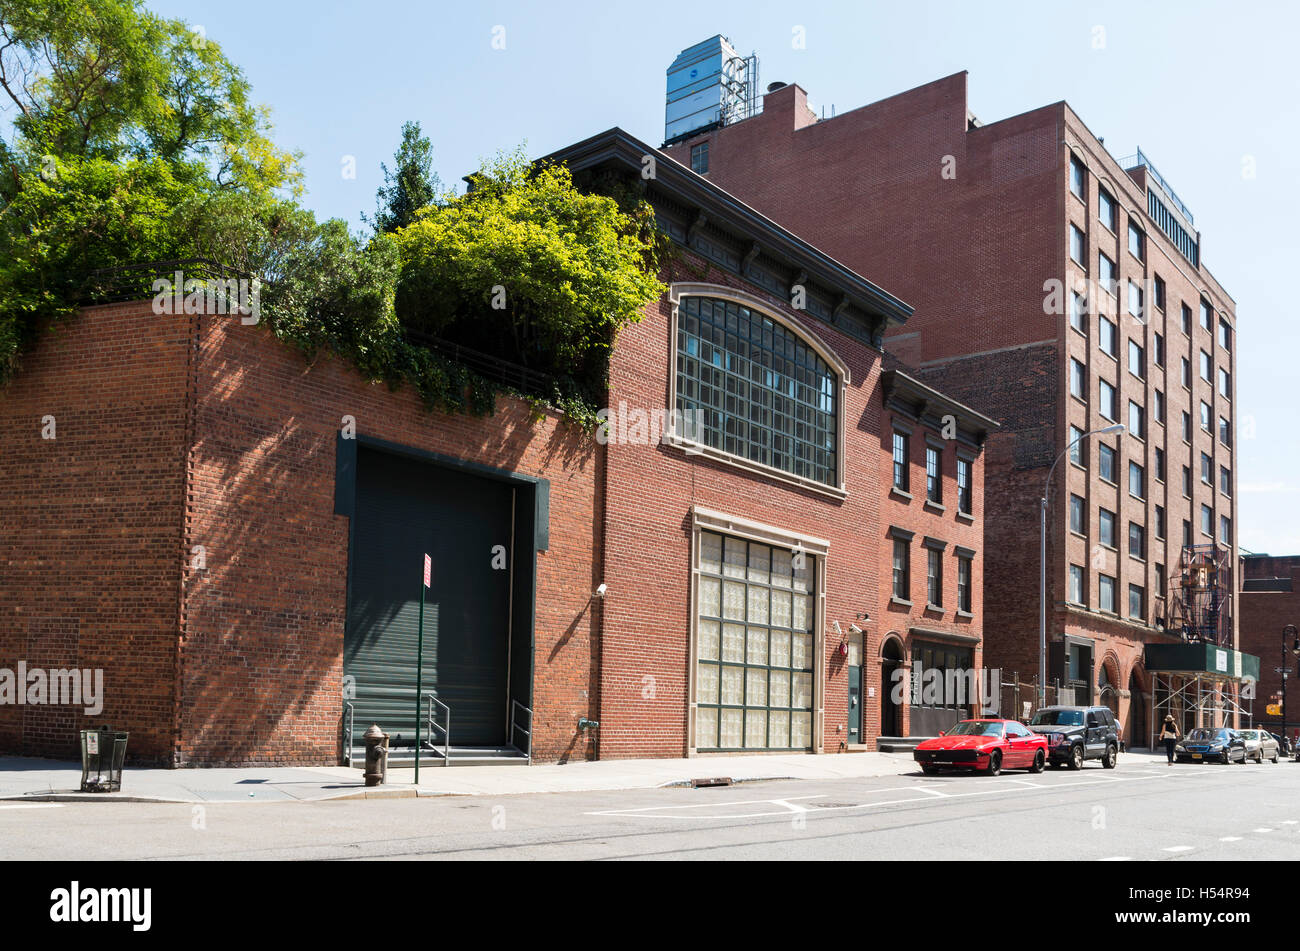 Converted industrial warehouse buildings in Greenwich Village, New York - Stock Image